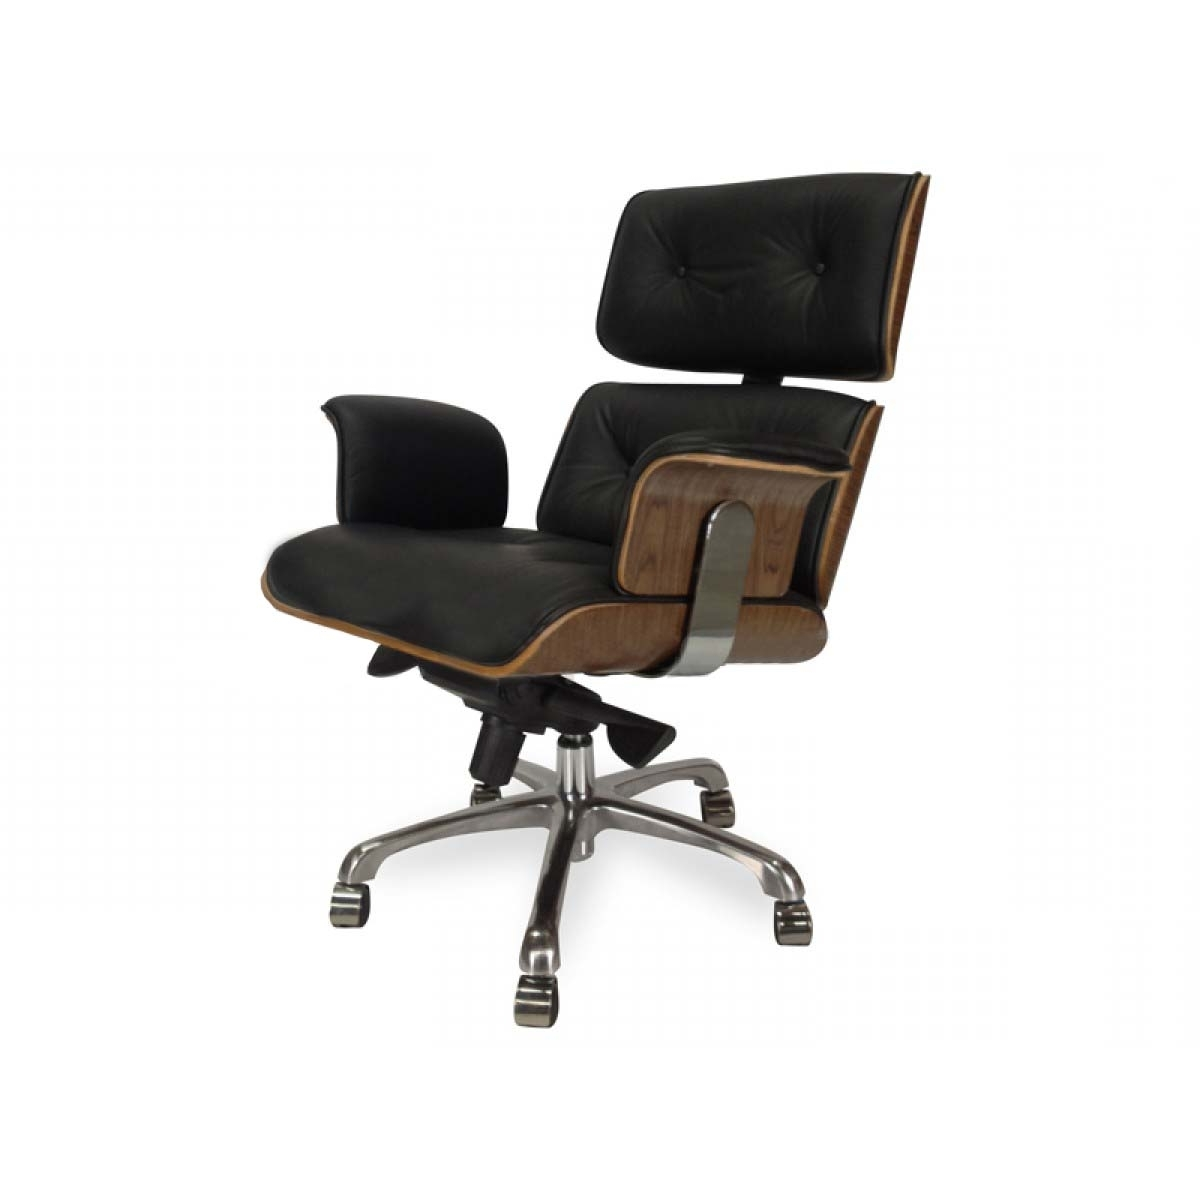 Premium Executive Office Chairs Within 2019 Awesome Eames Executive Desk Chair Pictures – Liltigertoo (View 13 of 20)